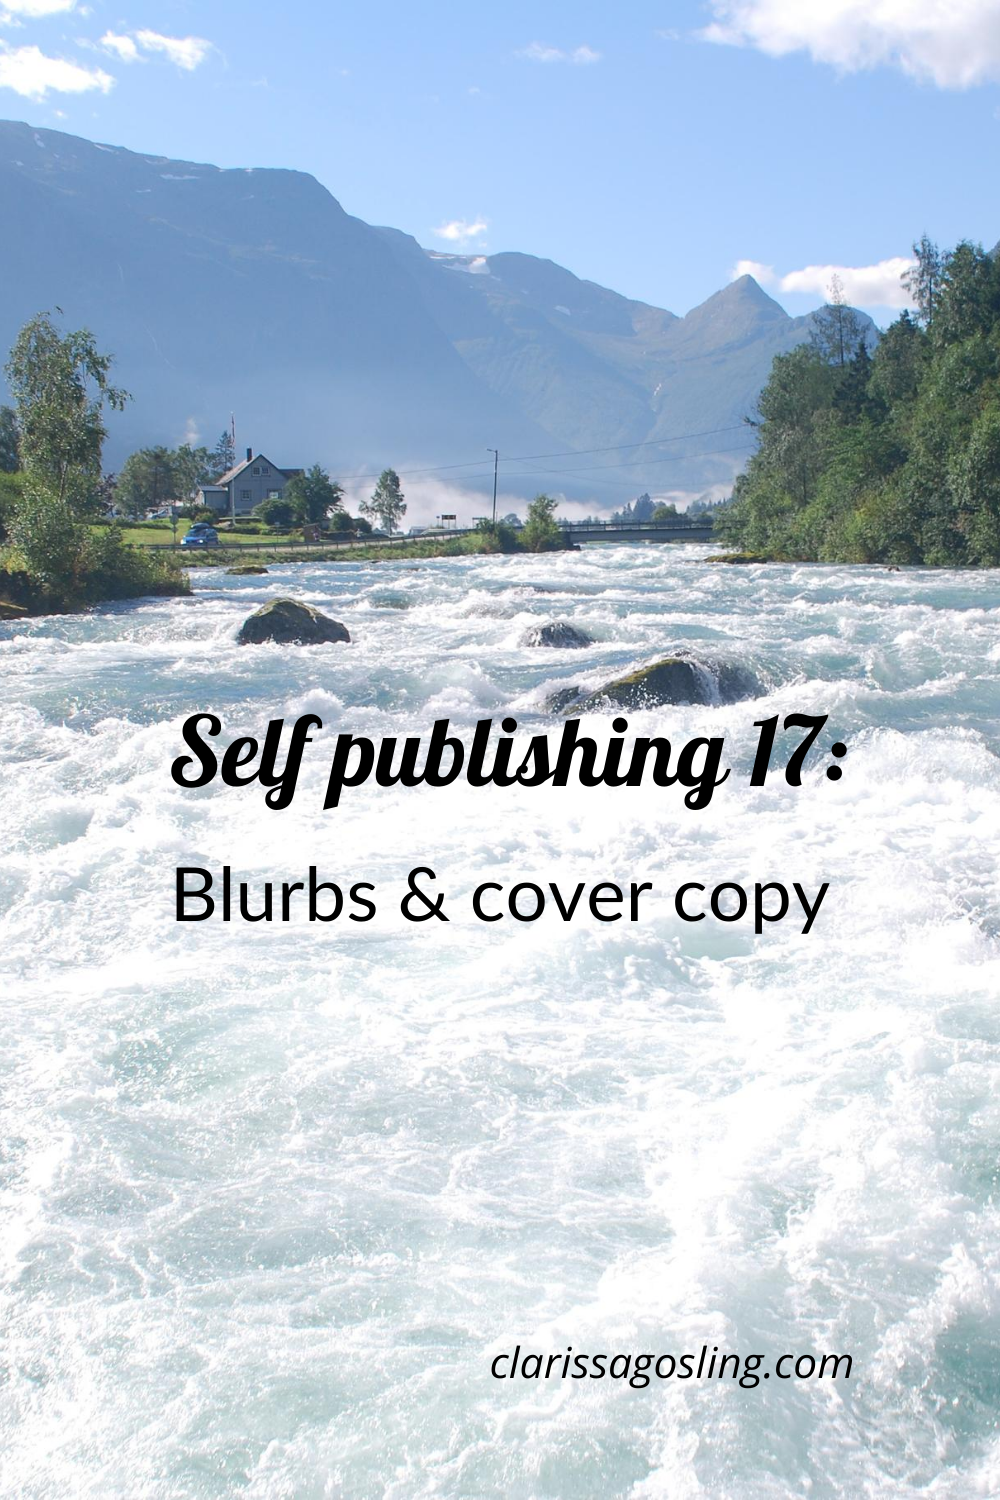 Self-publishing 17: Blurbs & cover copy